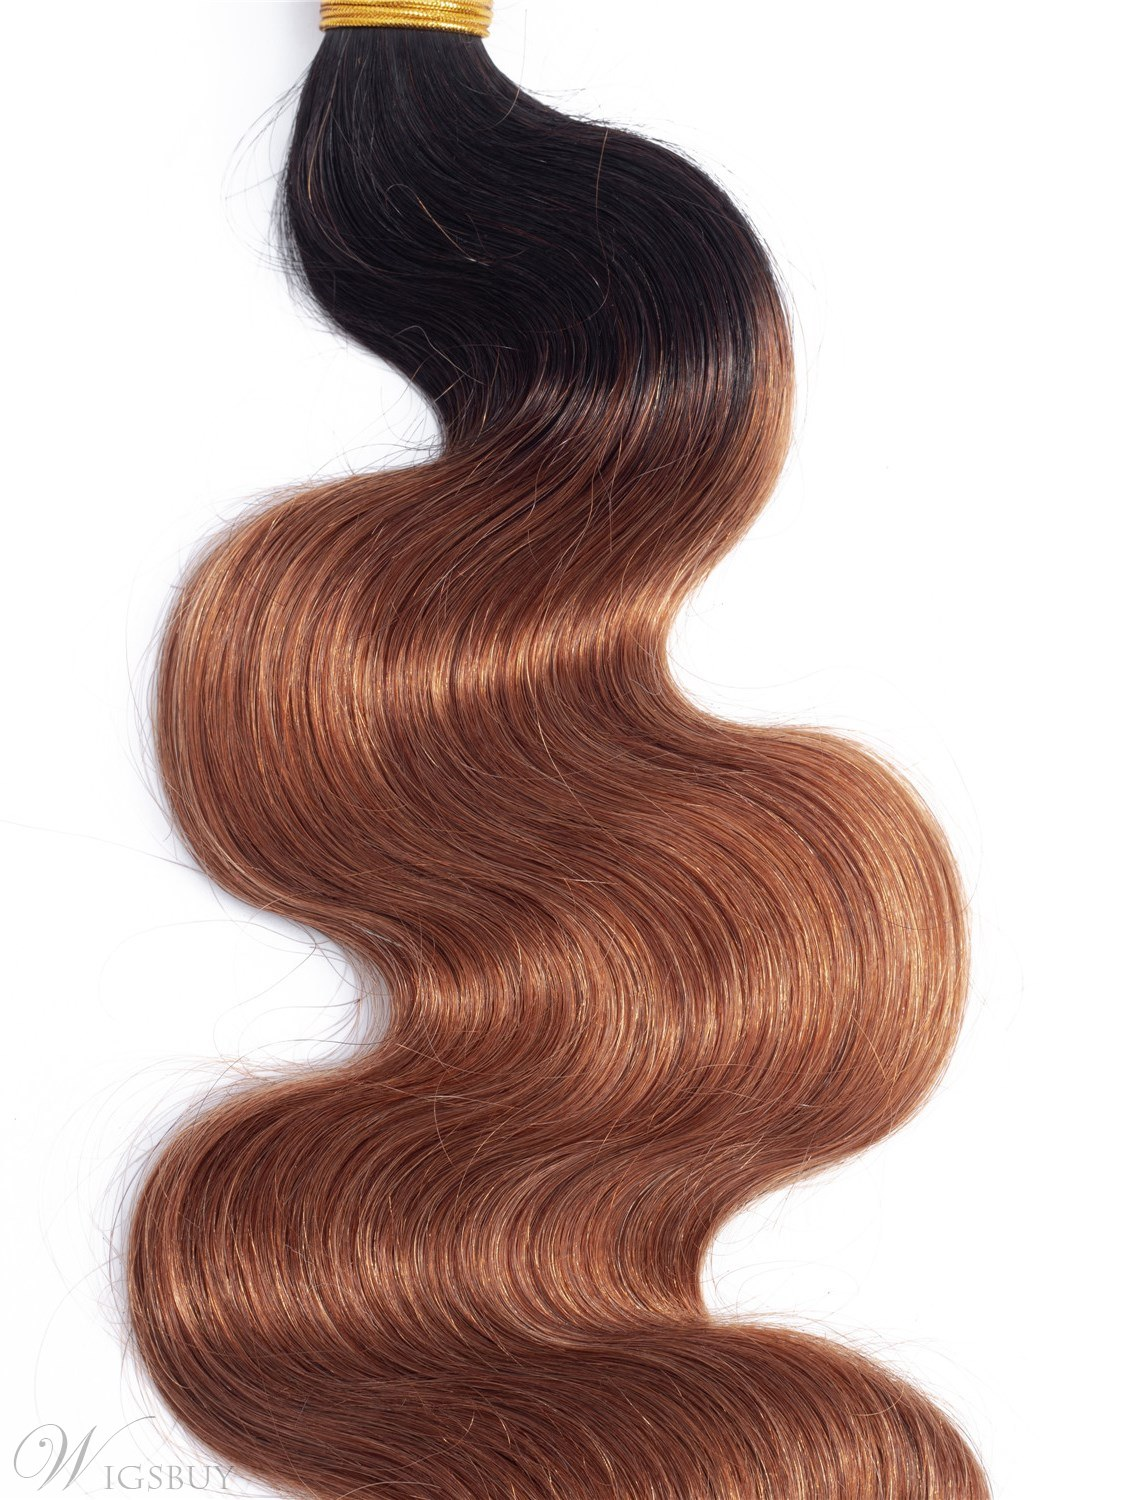 Wigsbuy Ombre Human Hair Bundles Body Wave 4 Bundles/Lot T1B/30 Color